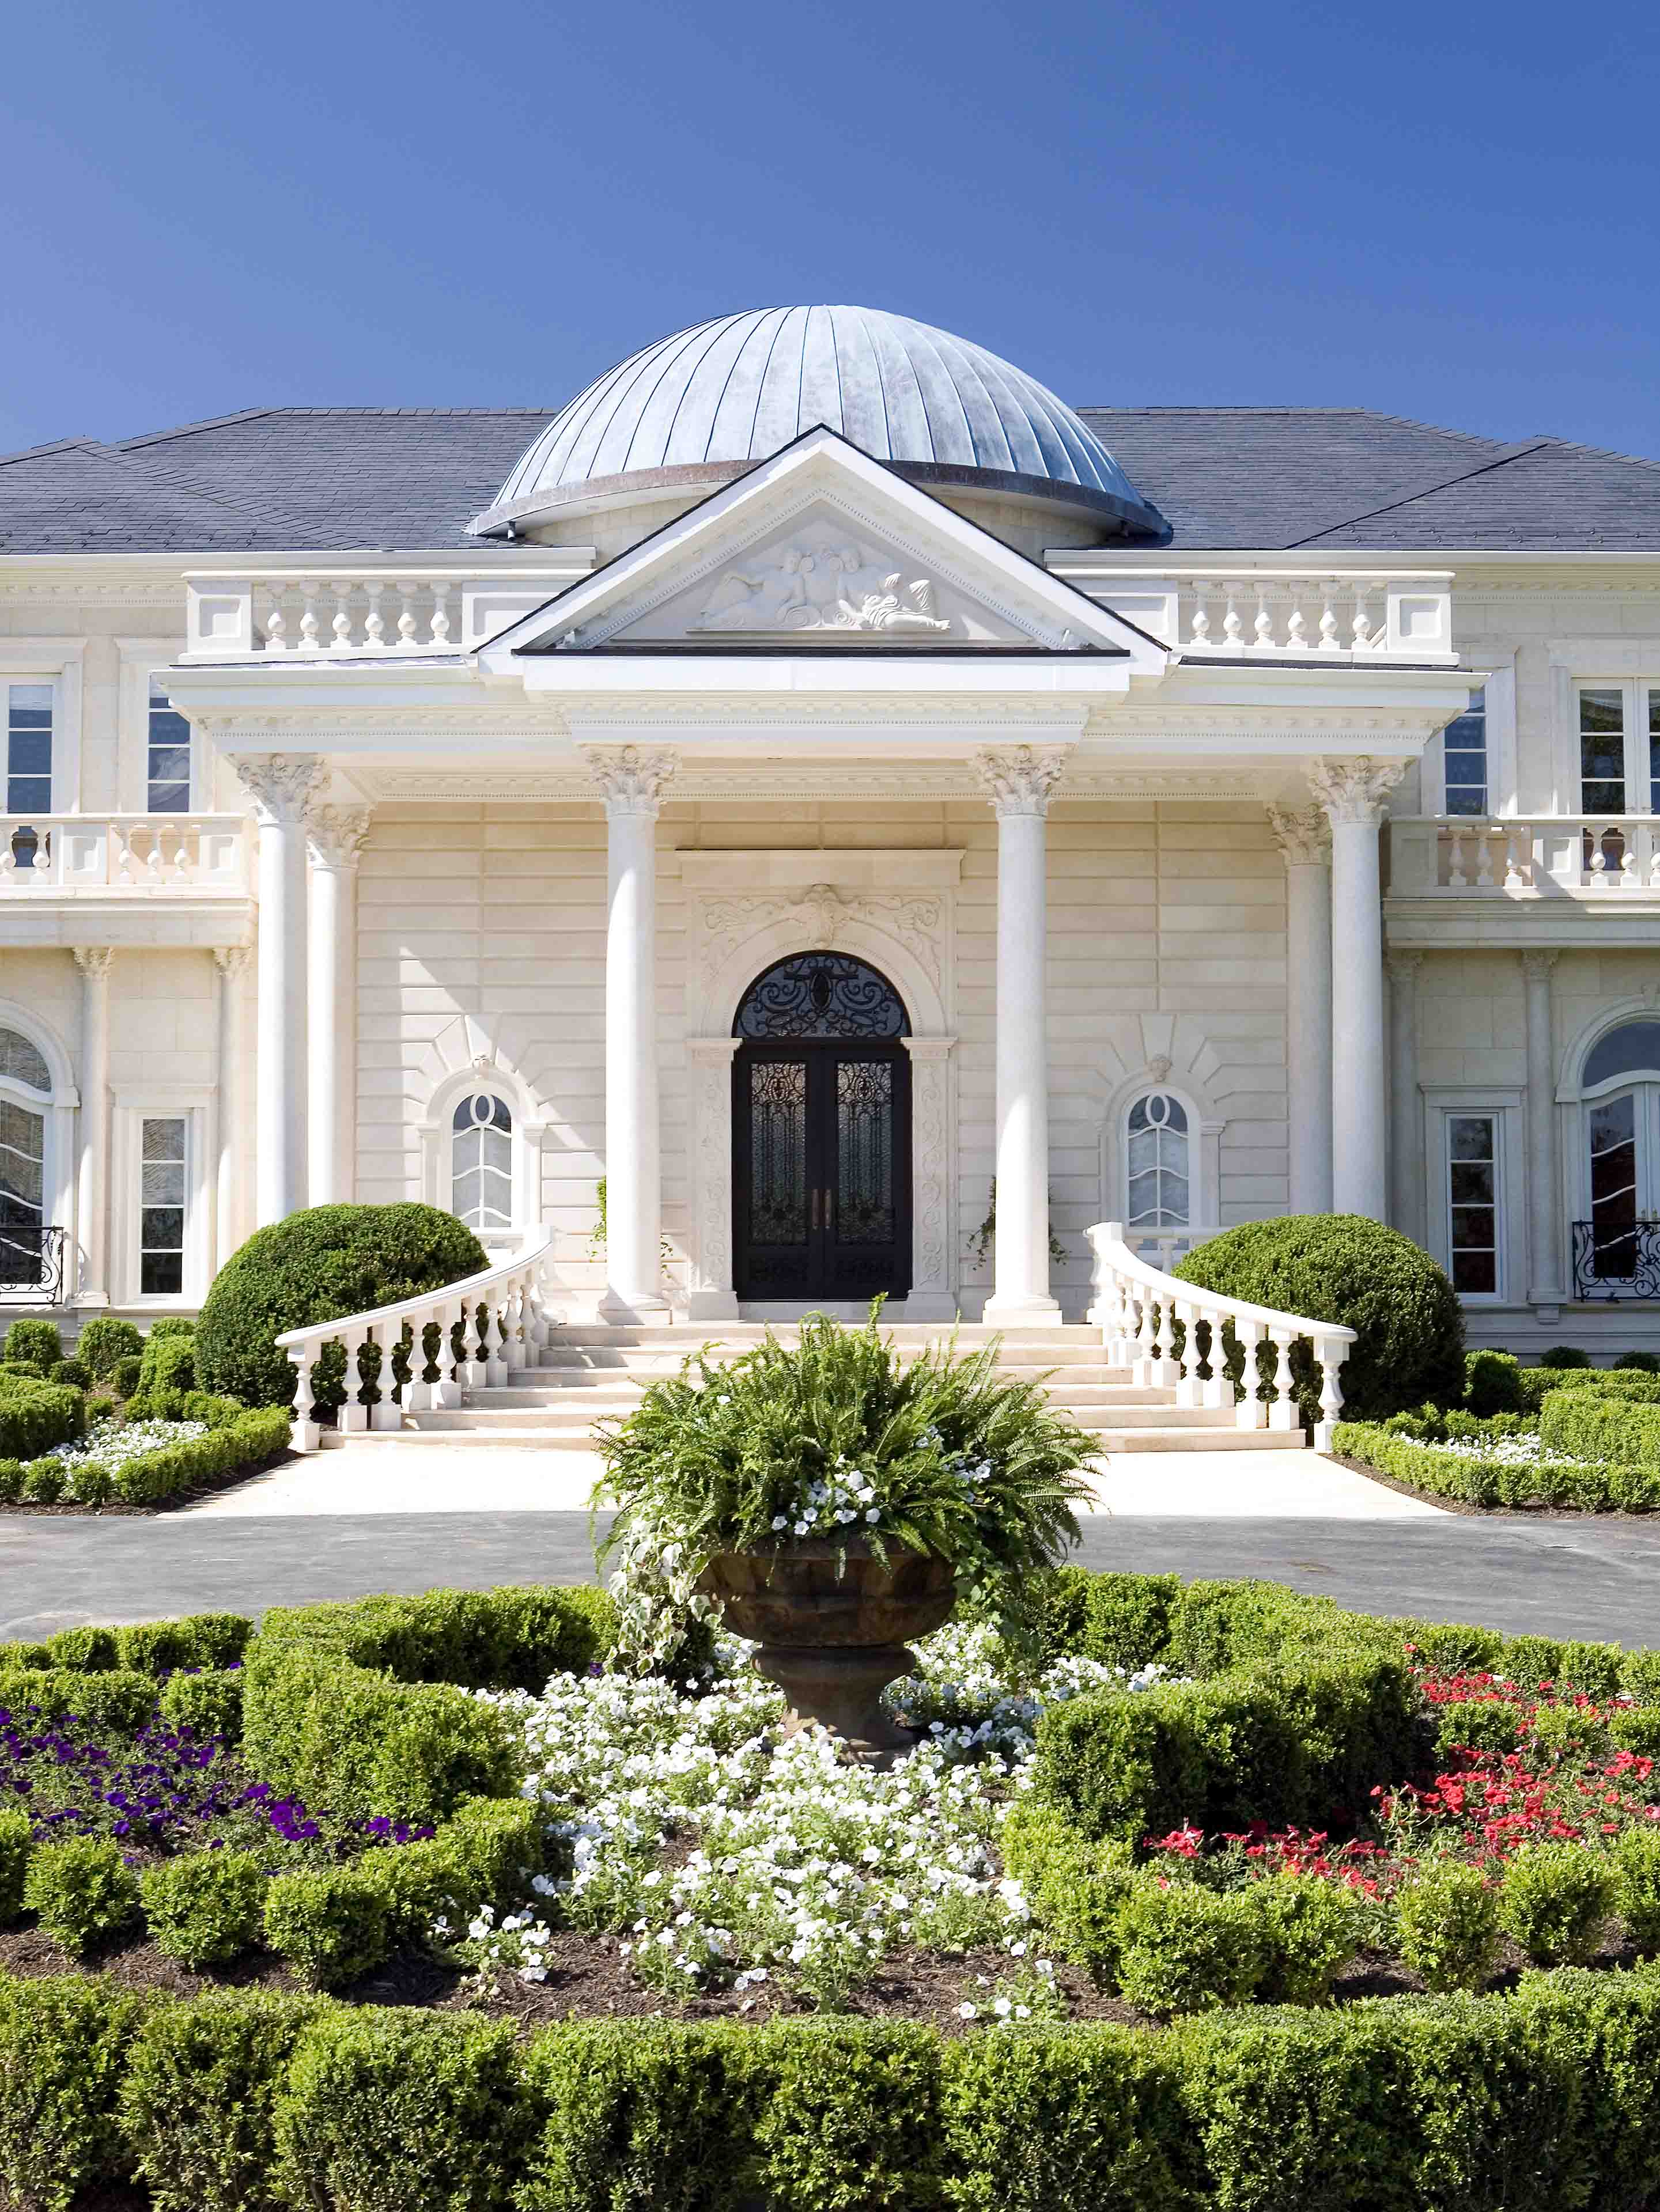 Entrance of mansion with a dome and columns with circular driveway